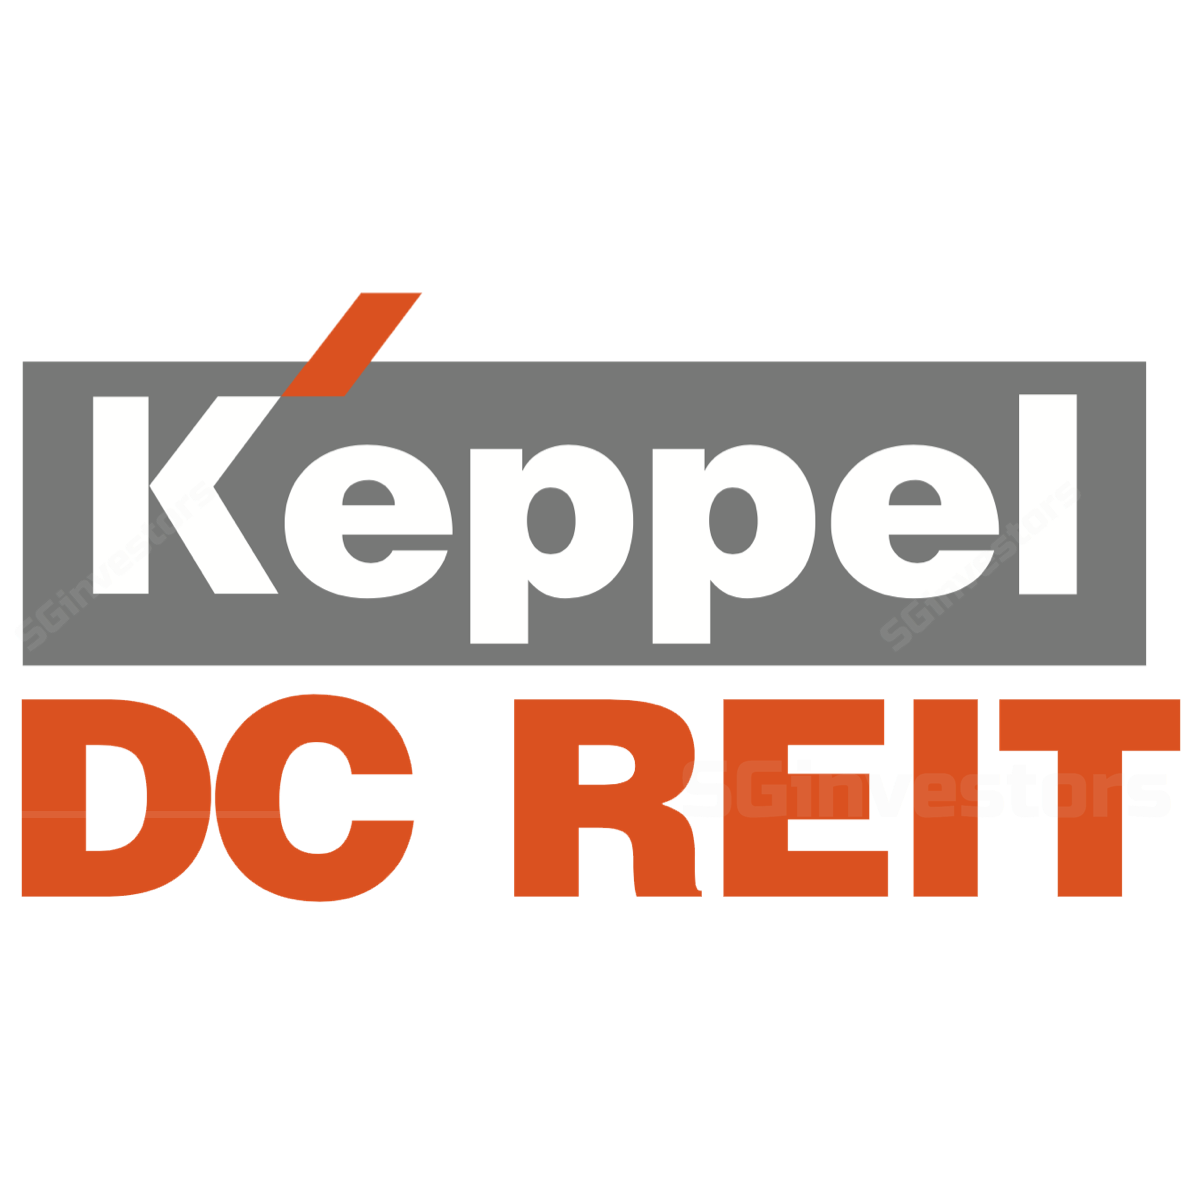 Keppel DC REIT - Phillip Securities 2017-09-14: Acquisition Of Second Data Centre In Dublin